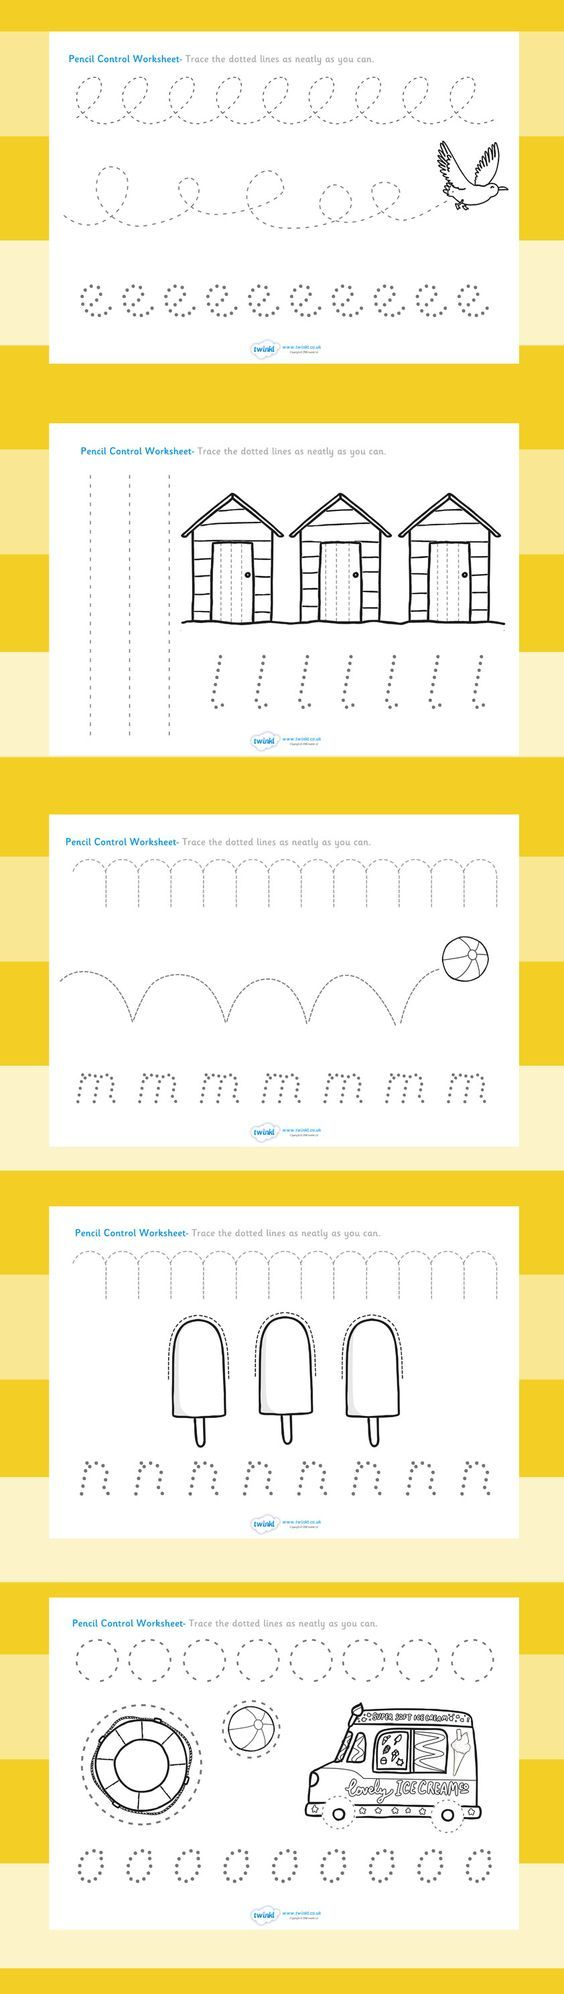 Worksheet Handwriting Worksheets Free best 25 free handwriting worksheets ideas on pinterest letter writing alphabet practice and pra